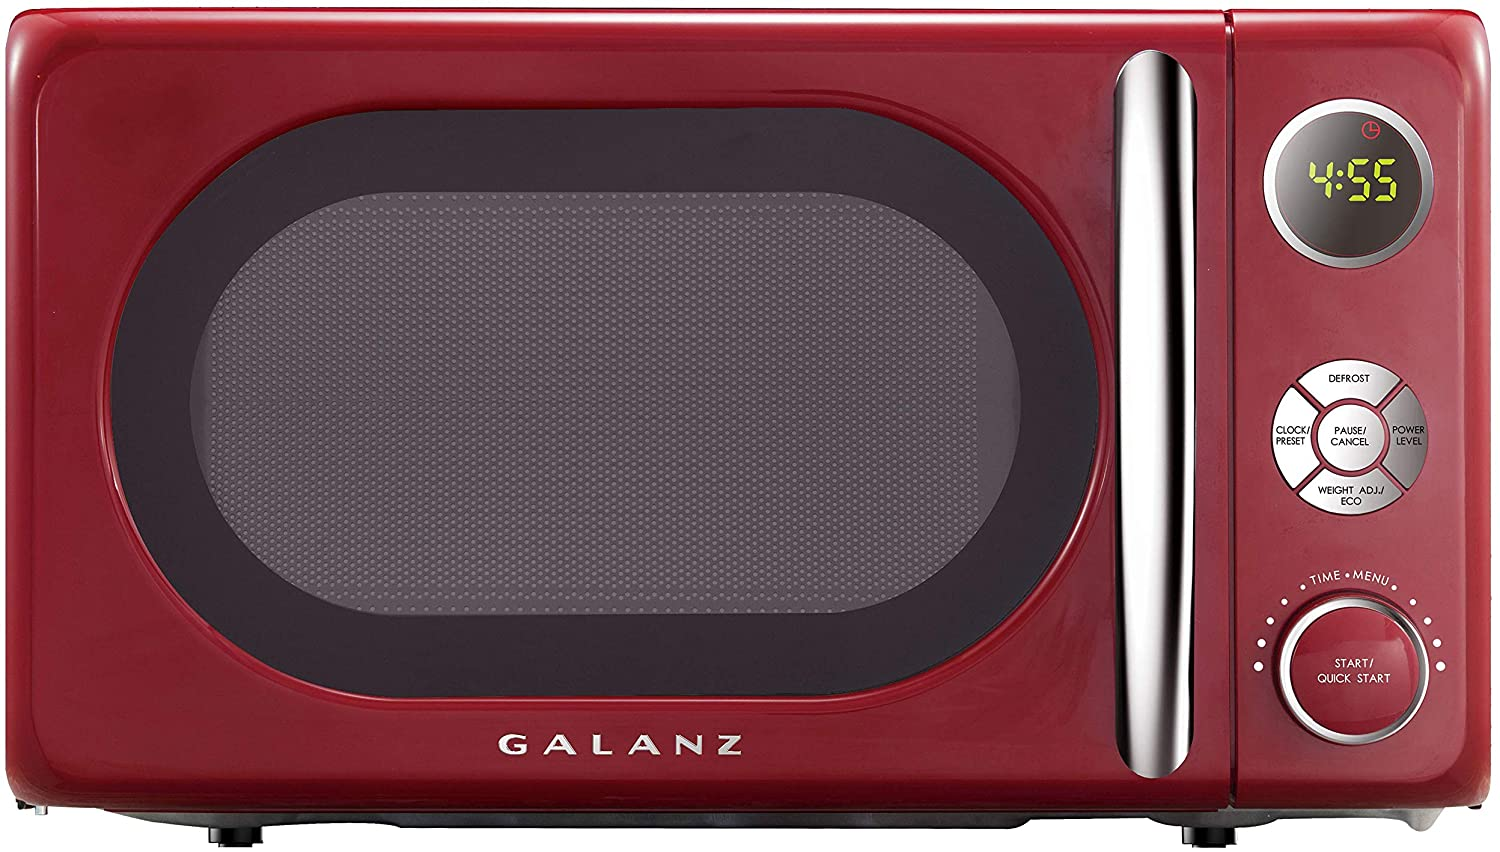 A Galanz red microwave oven